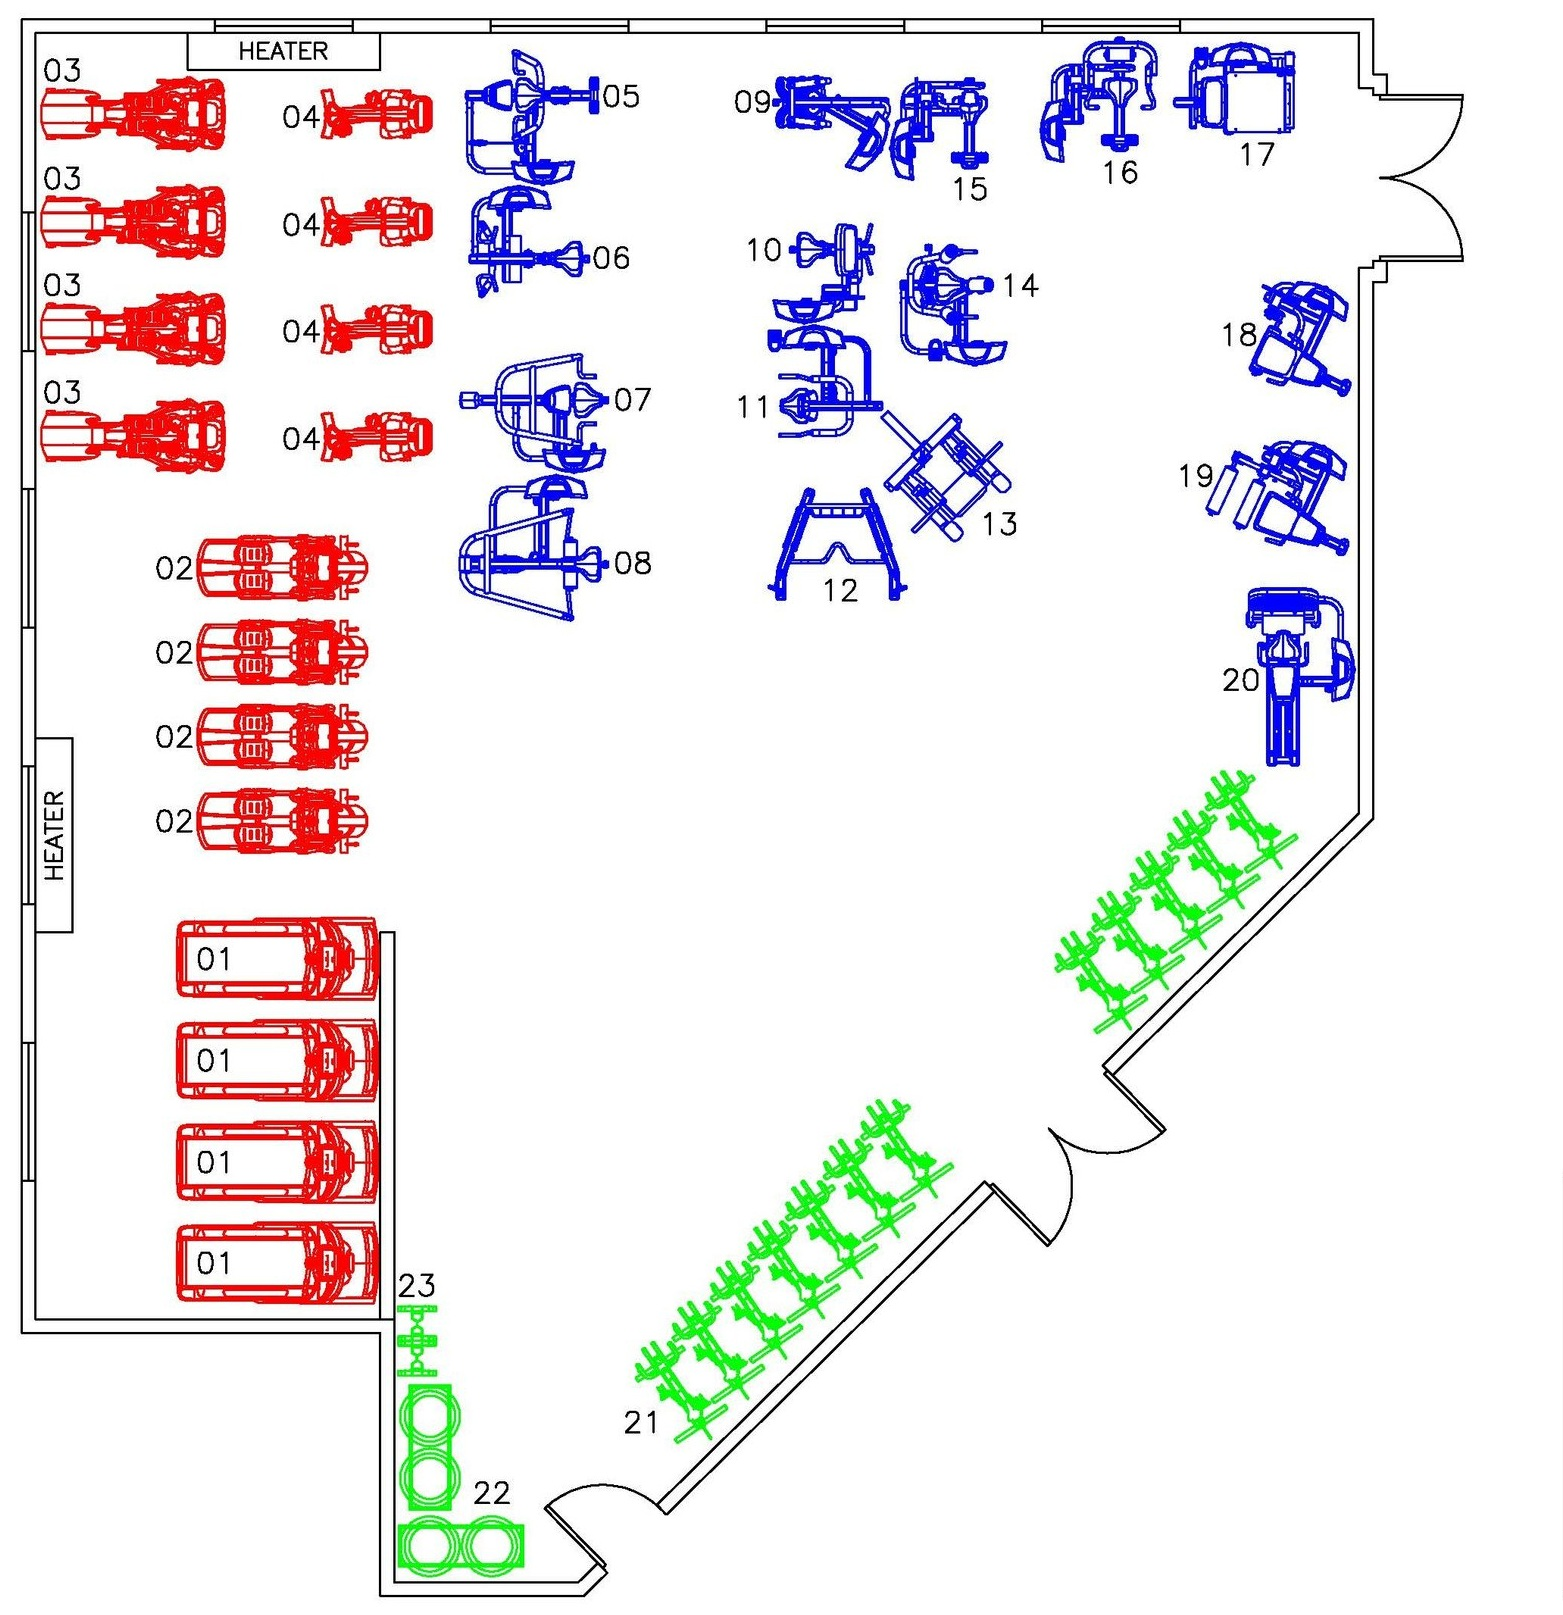 Draft layout done by ASF in 2011